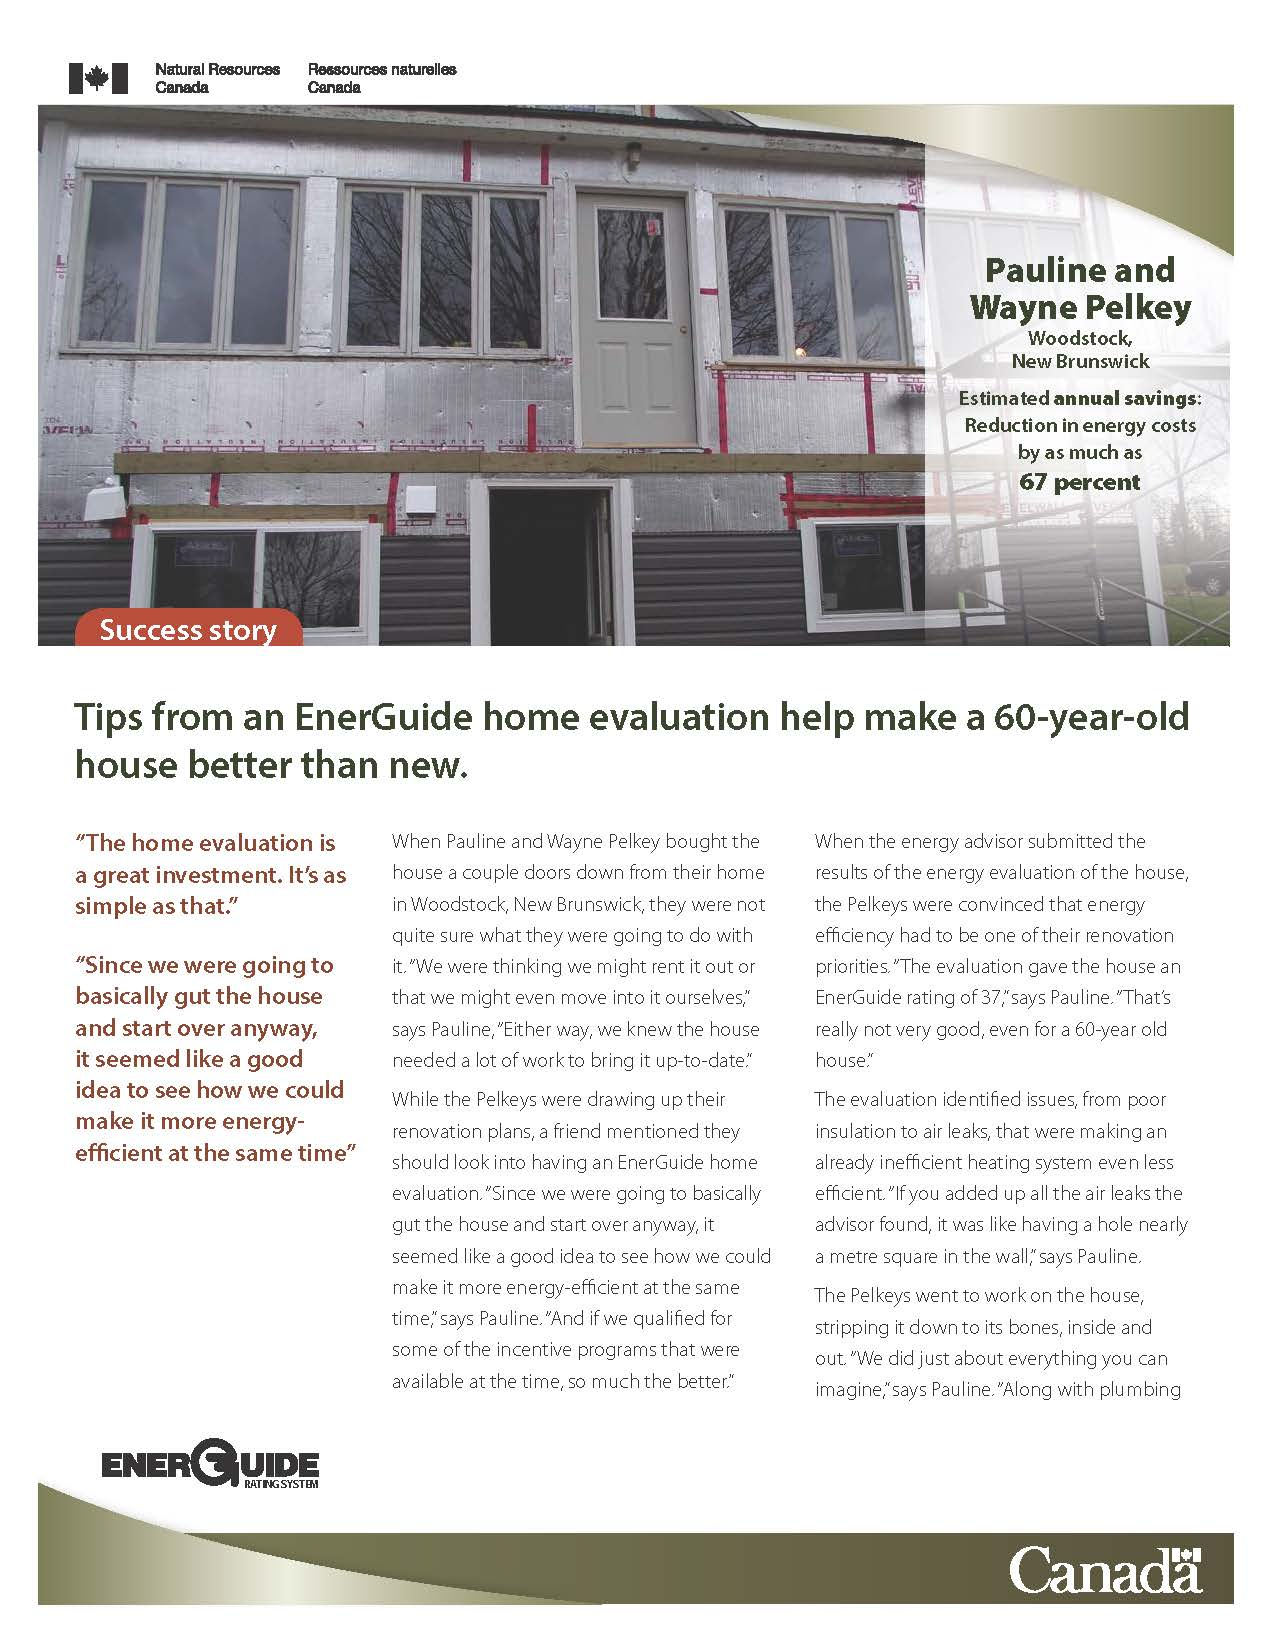 Tips from an EnerGuide home evaluation help make a 60-year-old house better than new, Woodstock, New Brunswick.